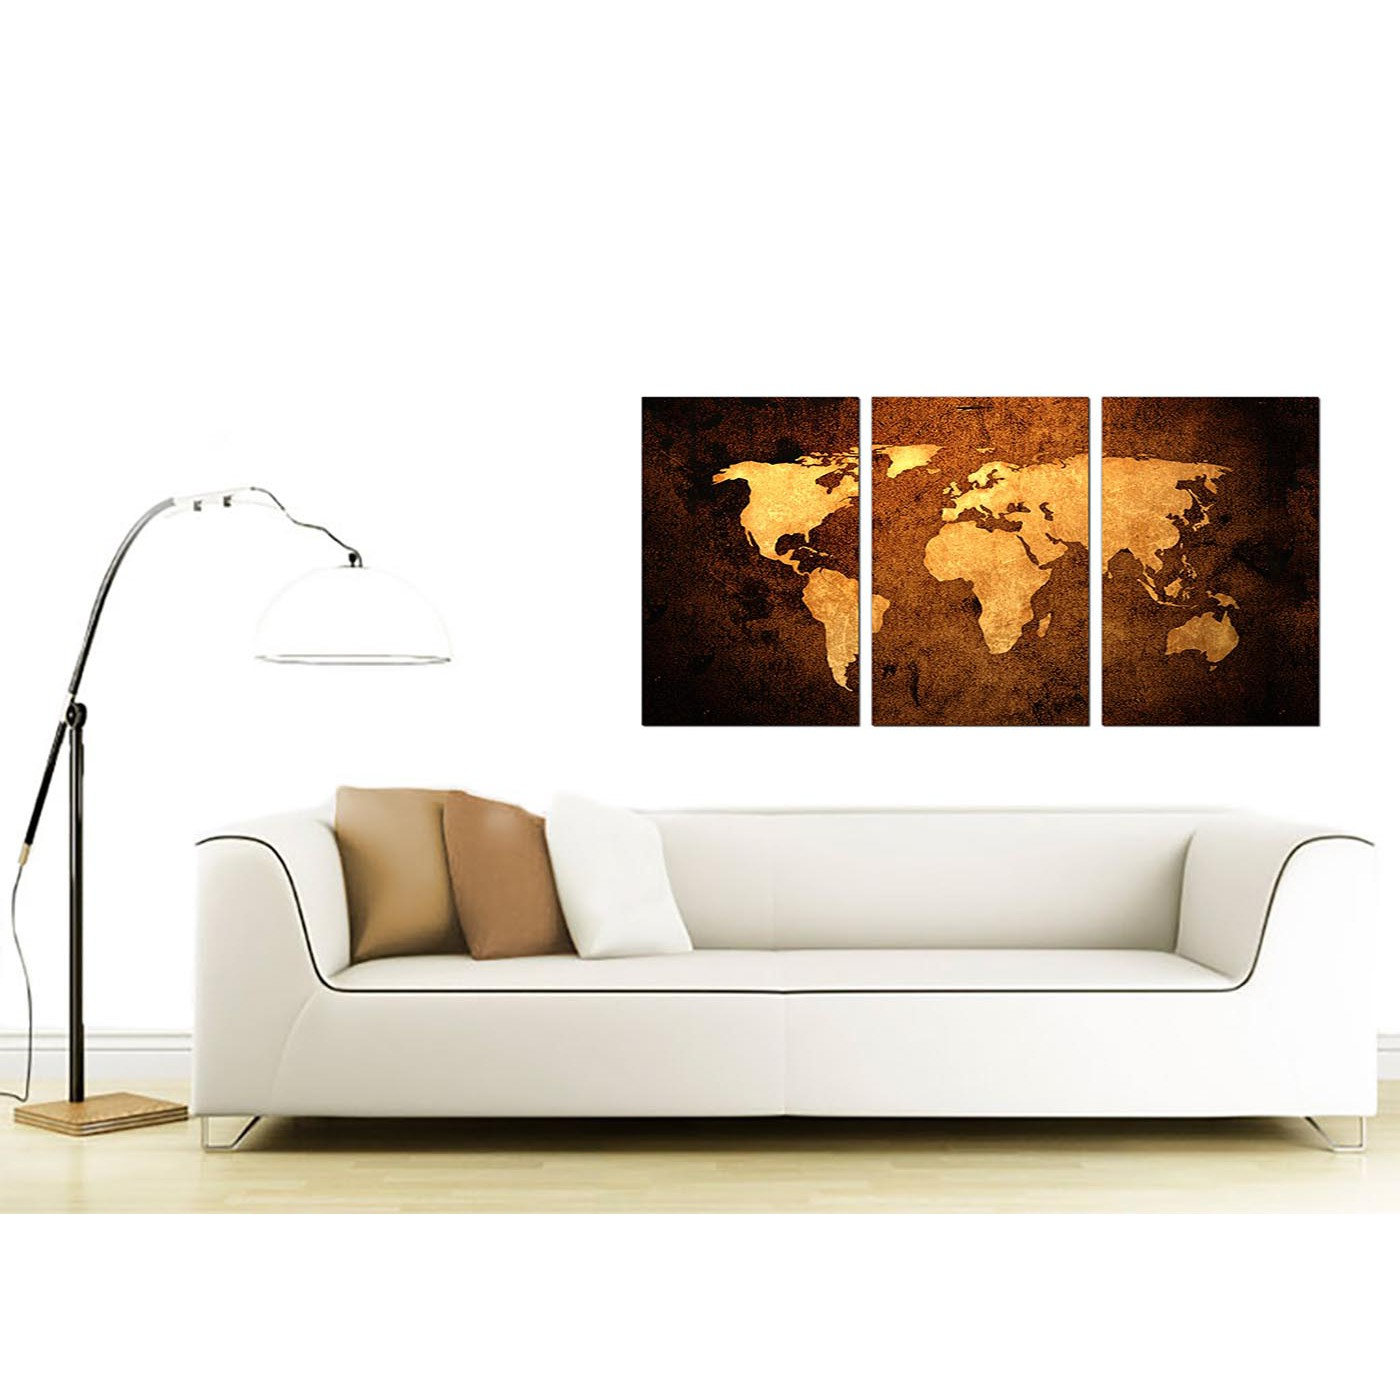 World map canvas wall art set of 3 for your bedroom display gallery item 3 3 panel world map canvas wall art 125cm x 60cm 3188 display gallery item 4 gumiabroncs Gallery